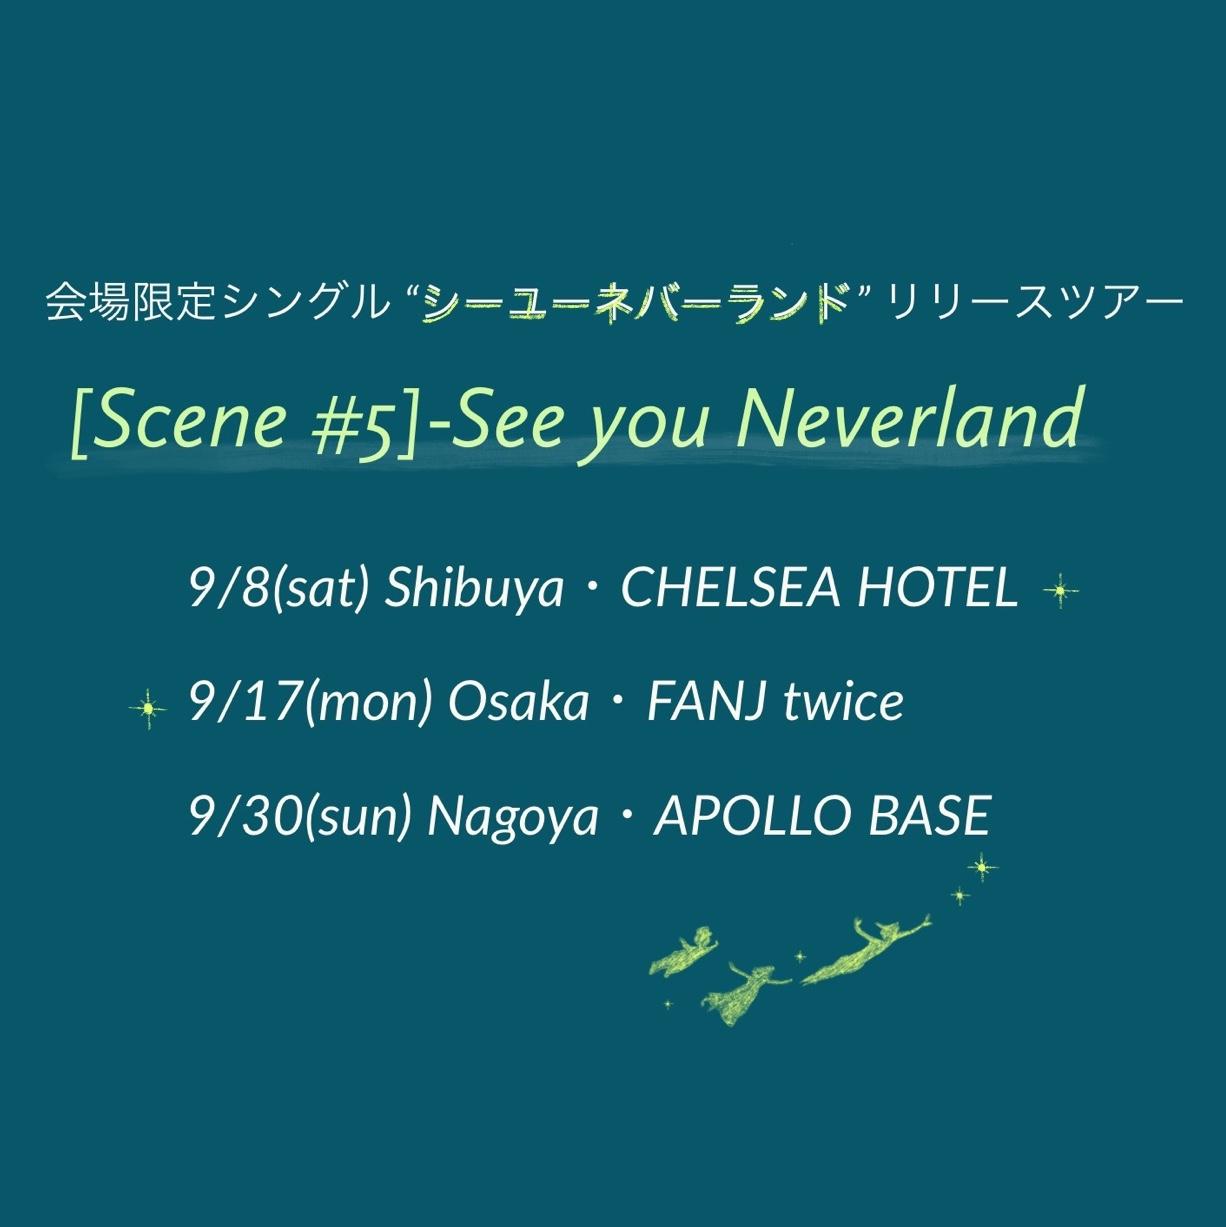 [Scene #5]-See you Neverland-